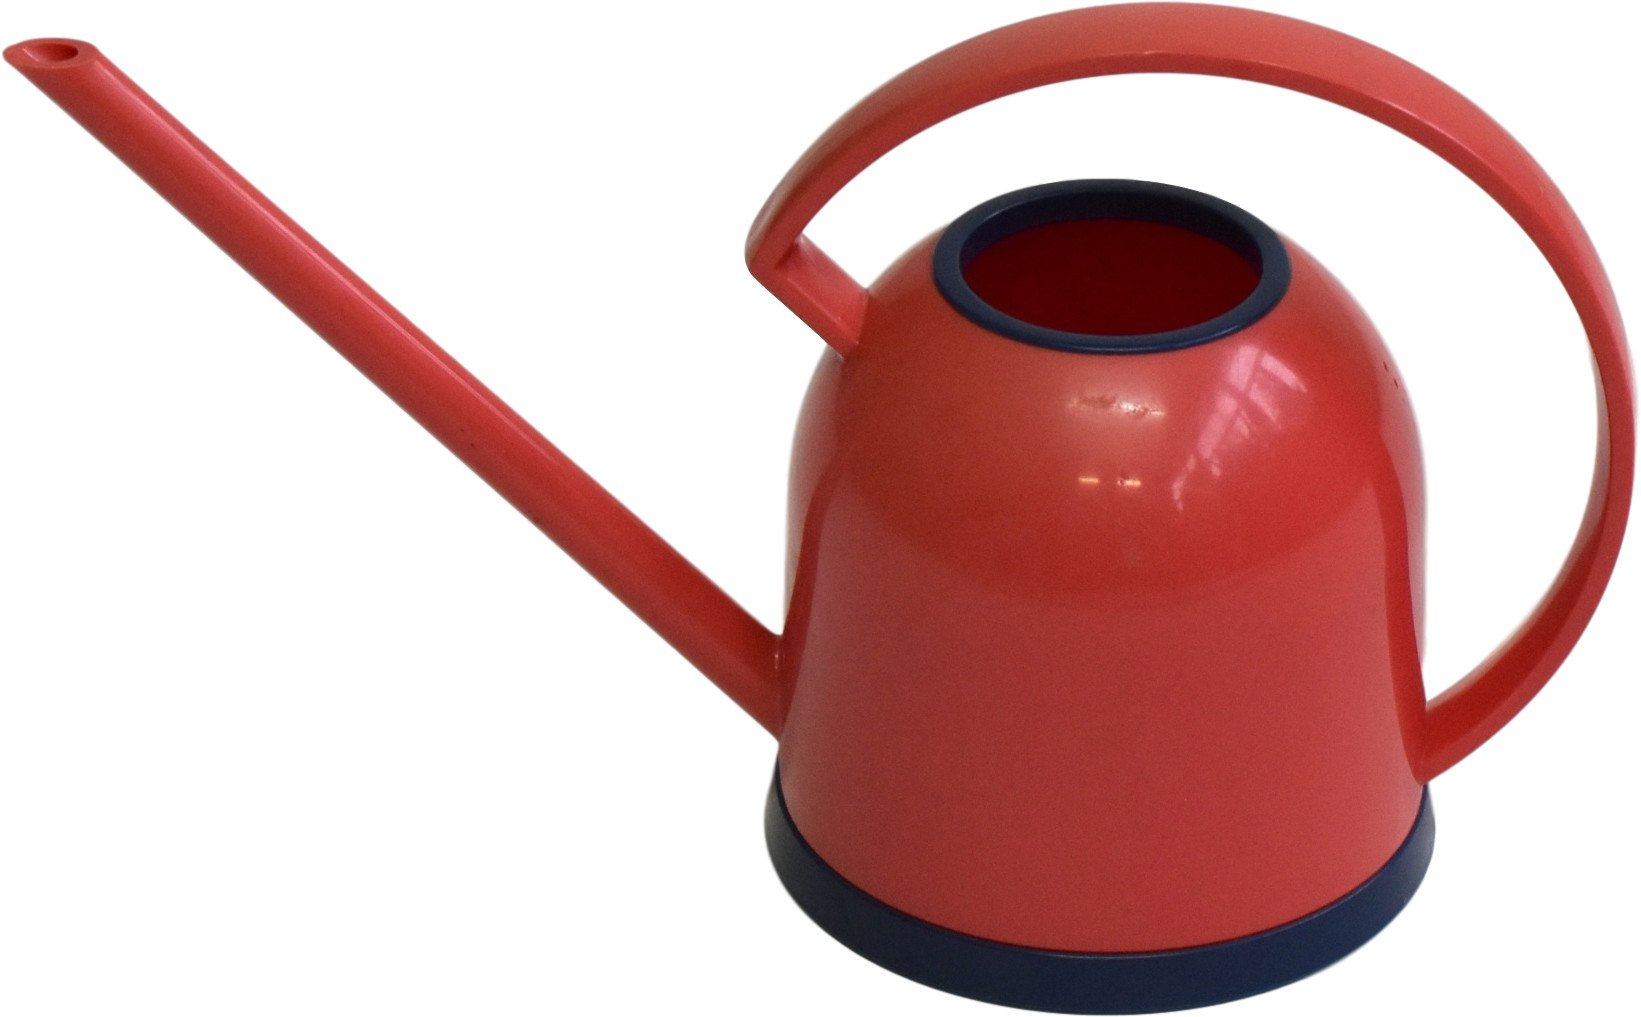 Watering Can, Emsa, Germany, 1980s